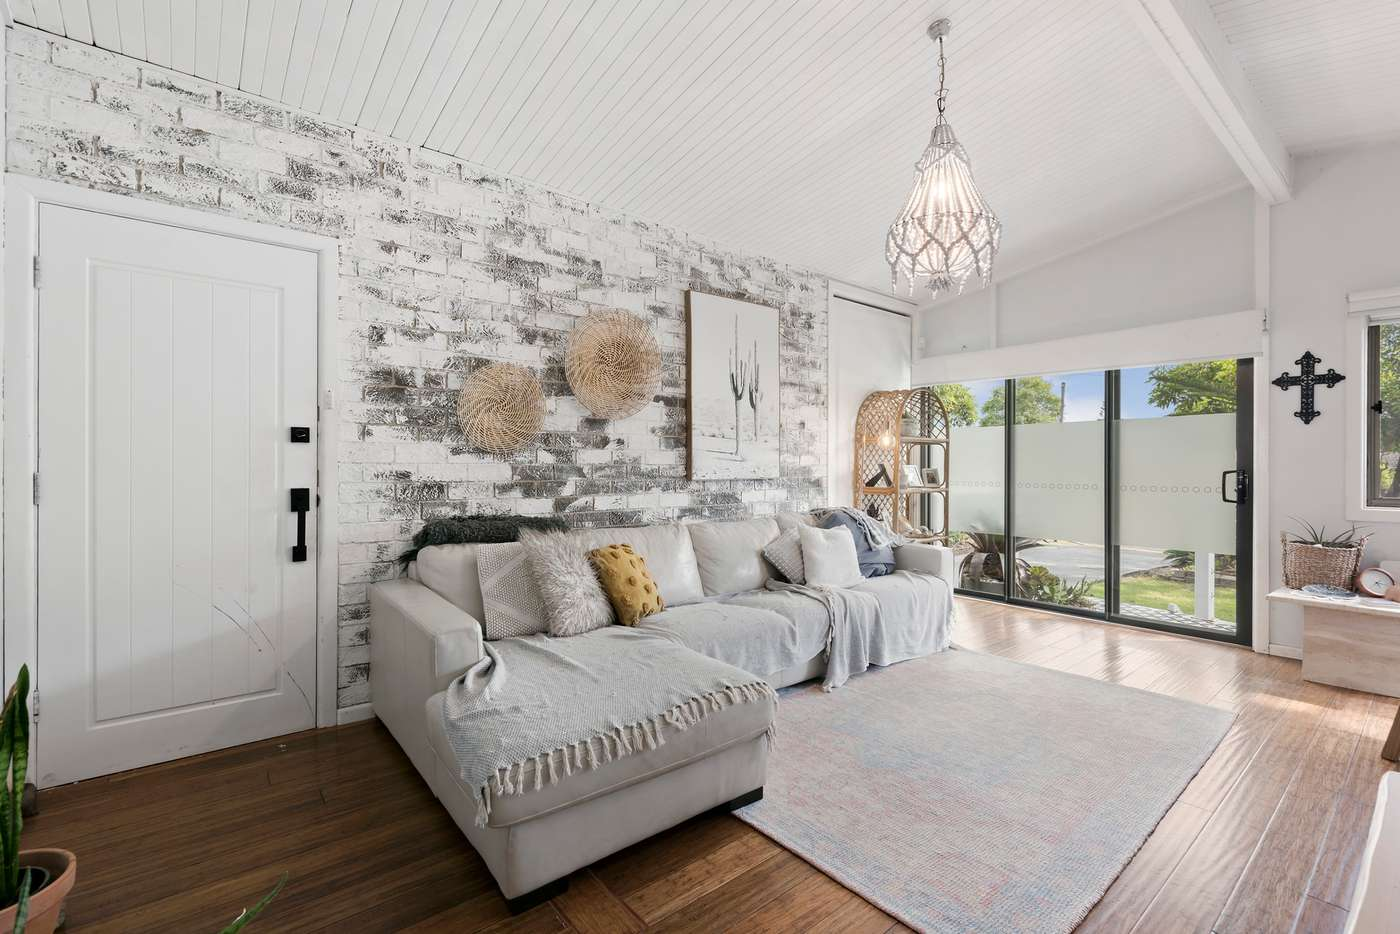 Main view of Homely house listing, 22 Central Avenue, Oak Flats NSW 2529